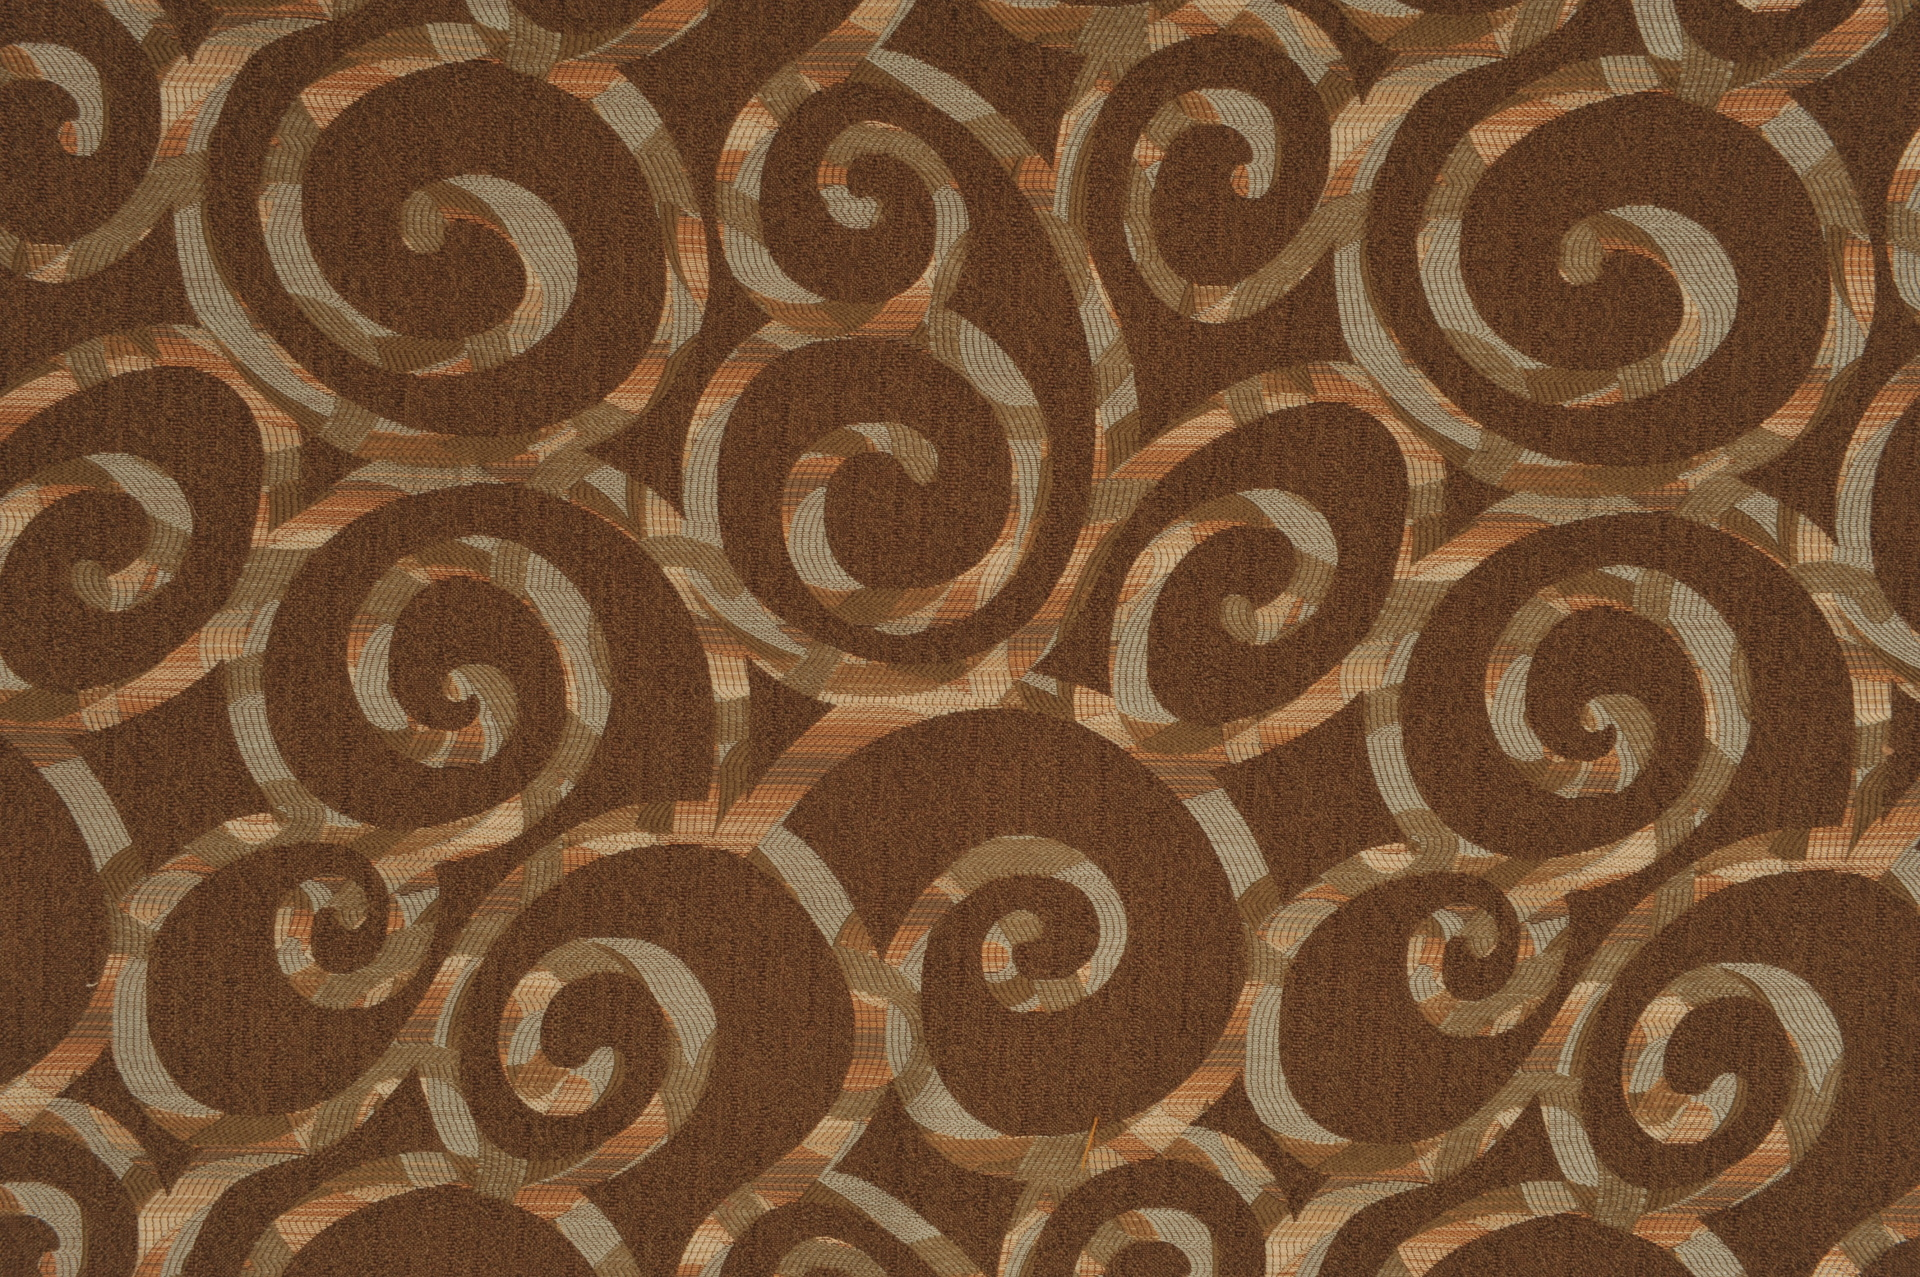 PSW - PICASSO SWIRL TAPESTRY